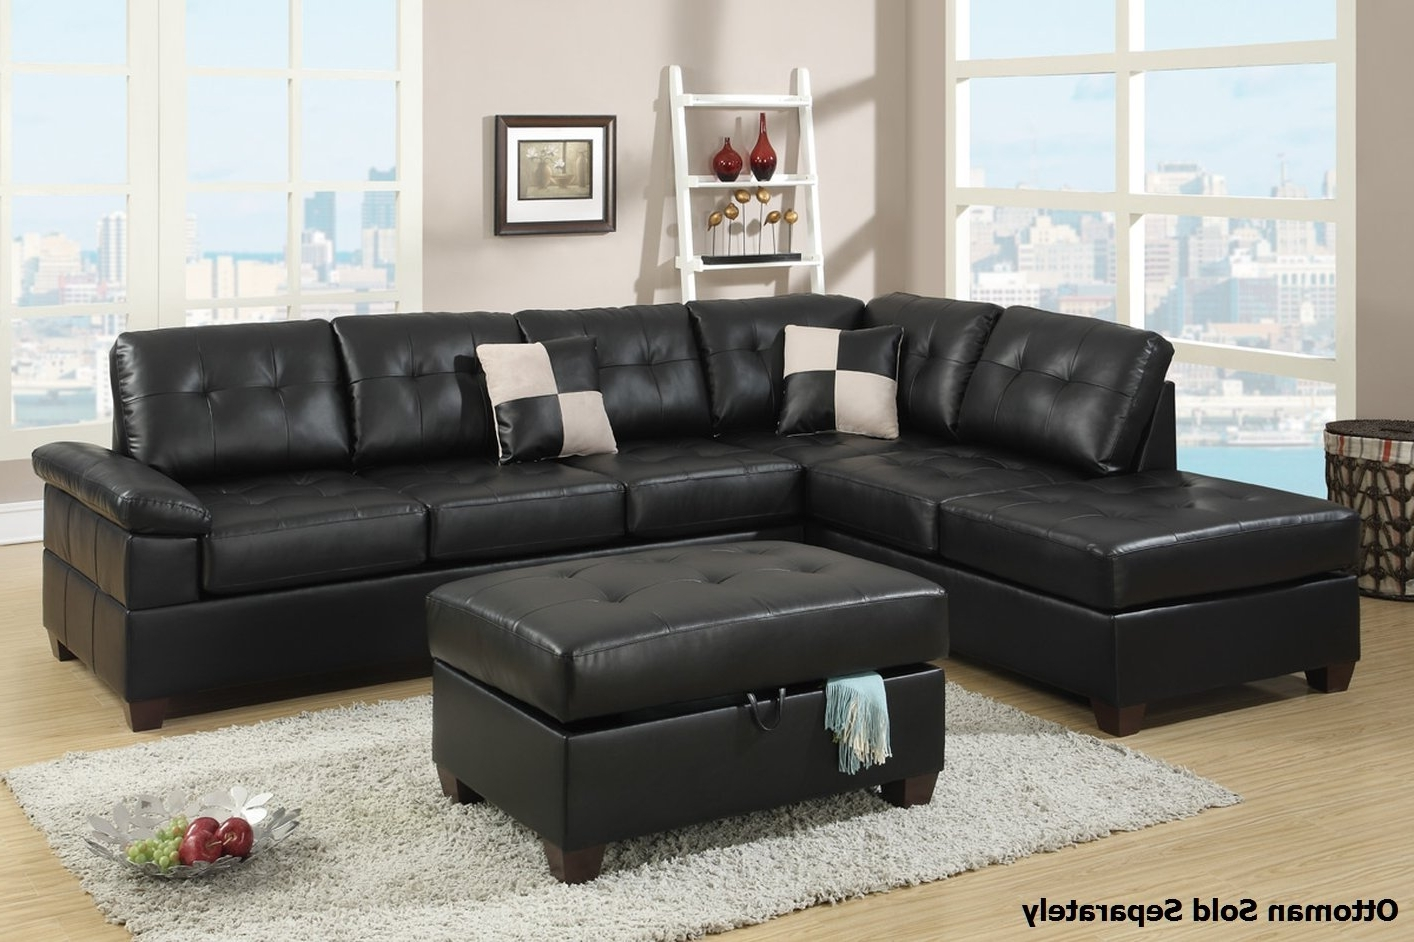 Popular Sectional Sofas At Rooms To Go Pertaining To Beautiful Sectional Sofas Rooms To Go 77 For Office Sofa Ideas (View 10 of 15)